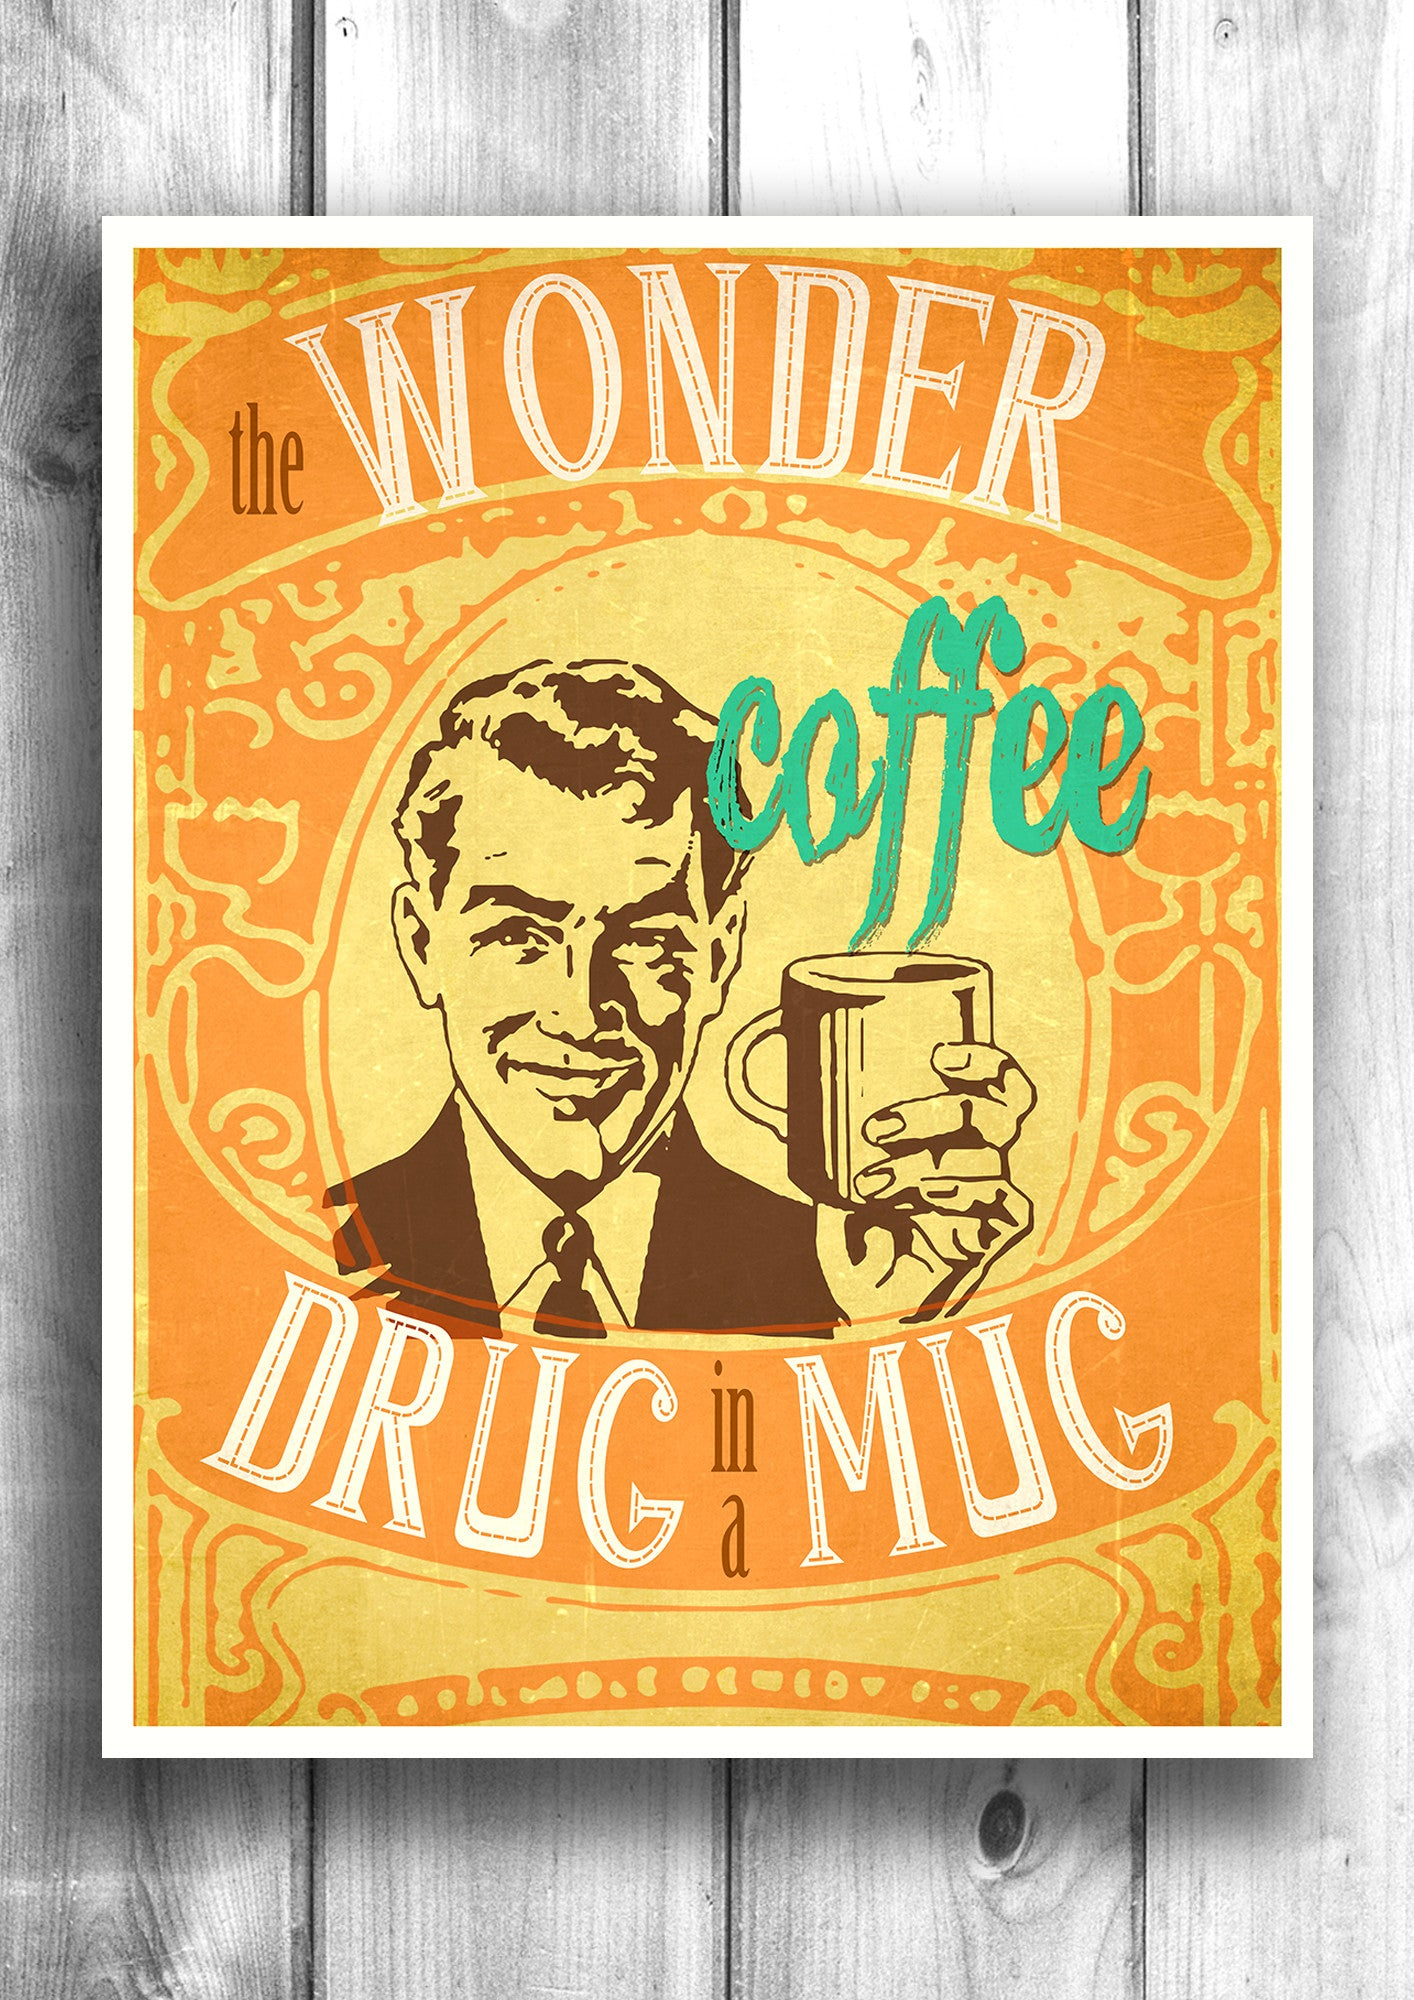 Coffee - The drug in a mug - Fine art letterpress poster - Kitchen decor